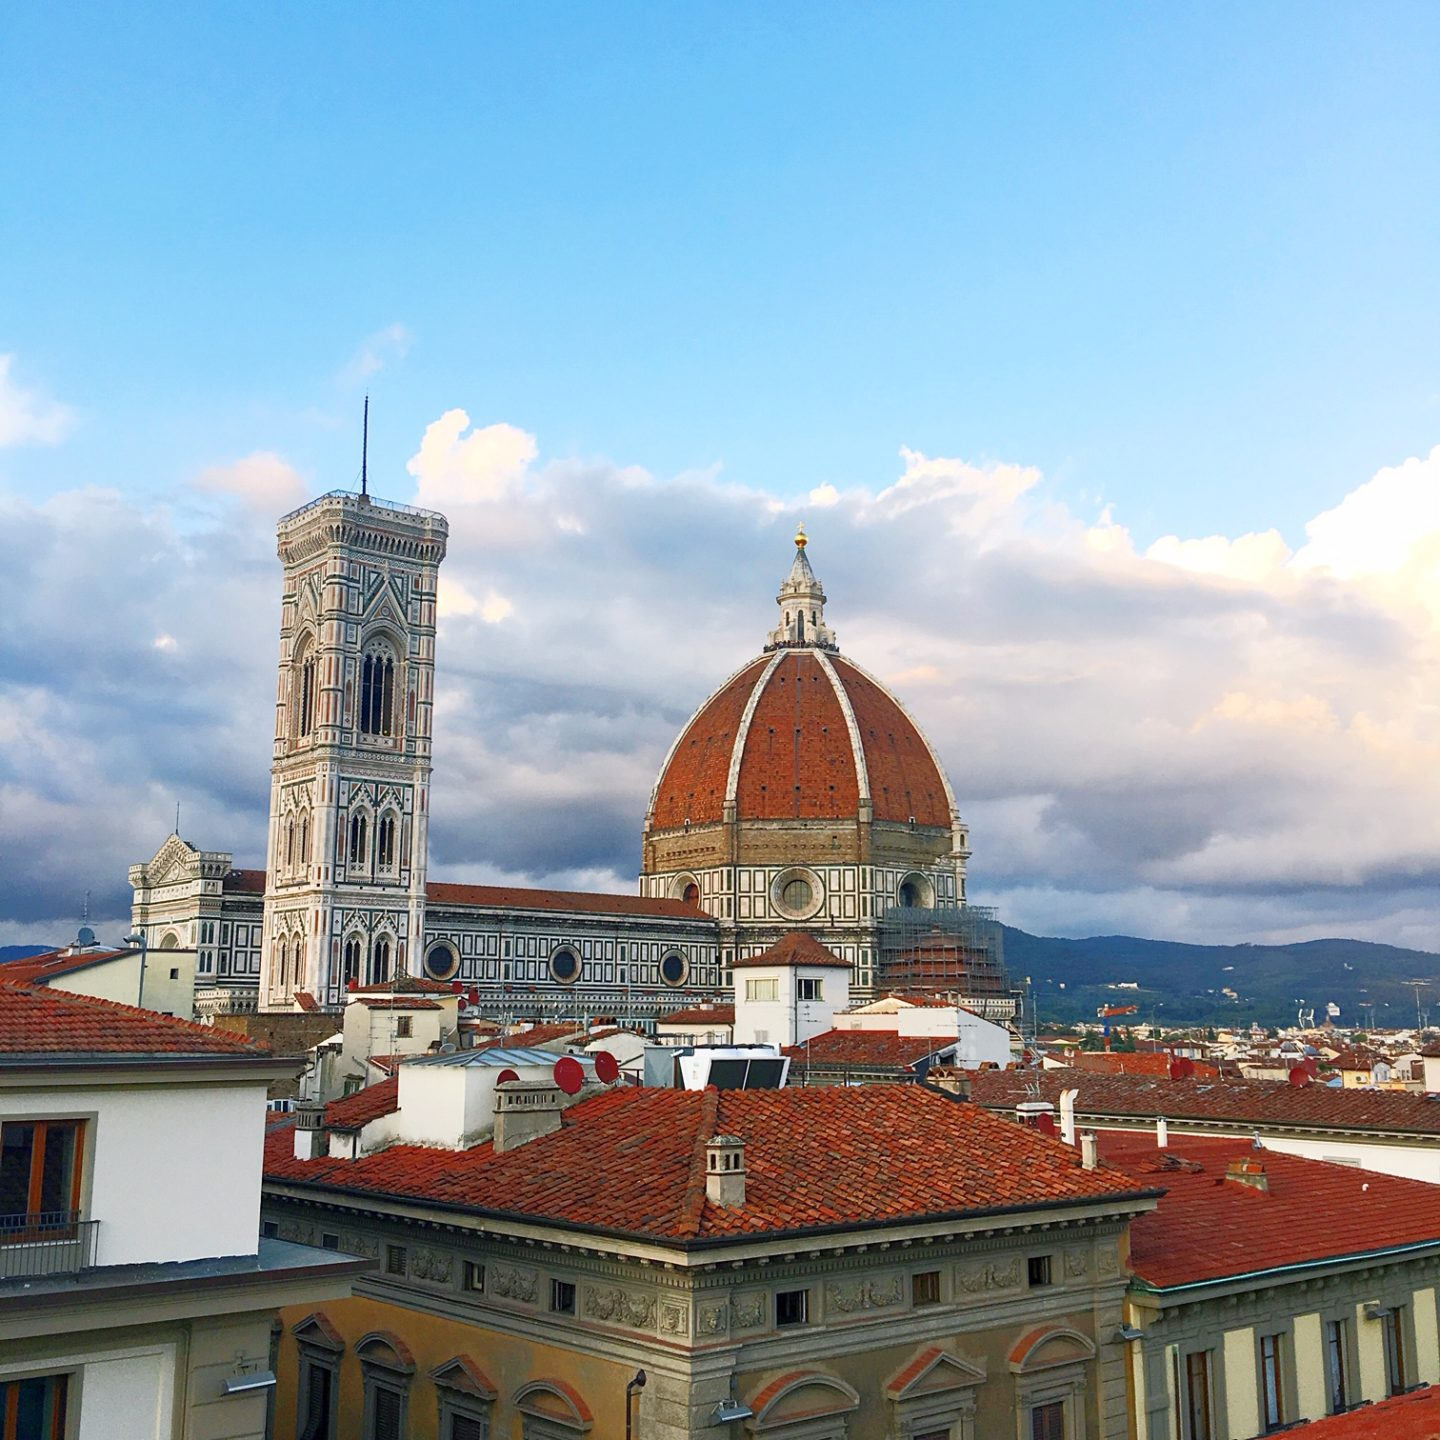 Florence across the rooftops